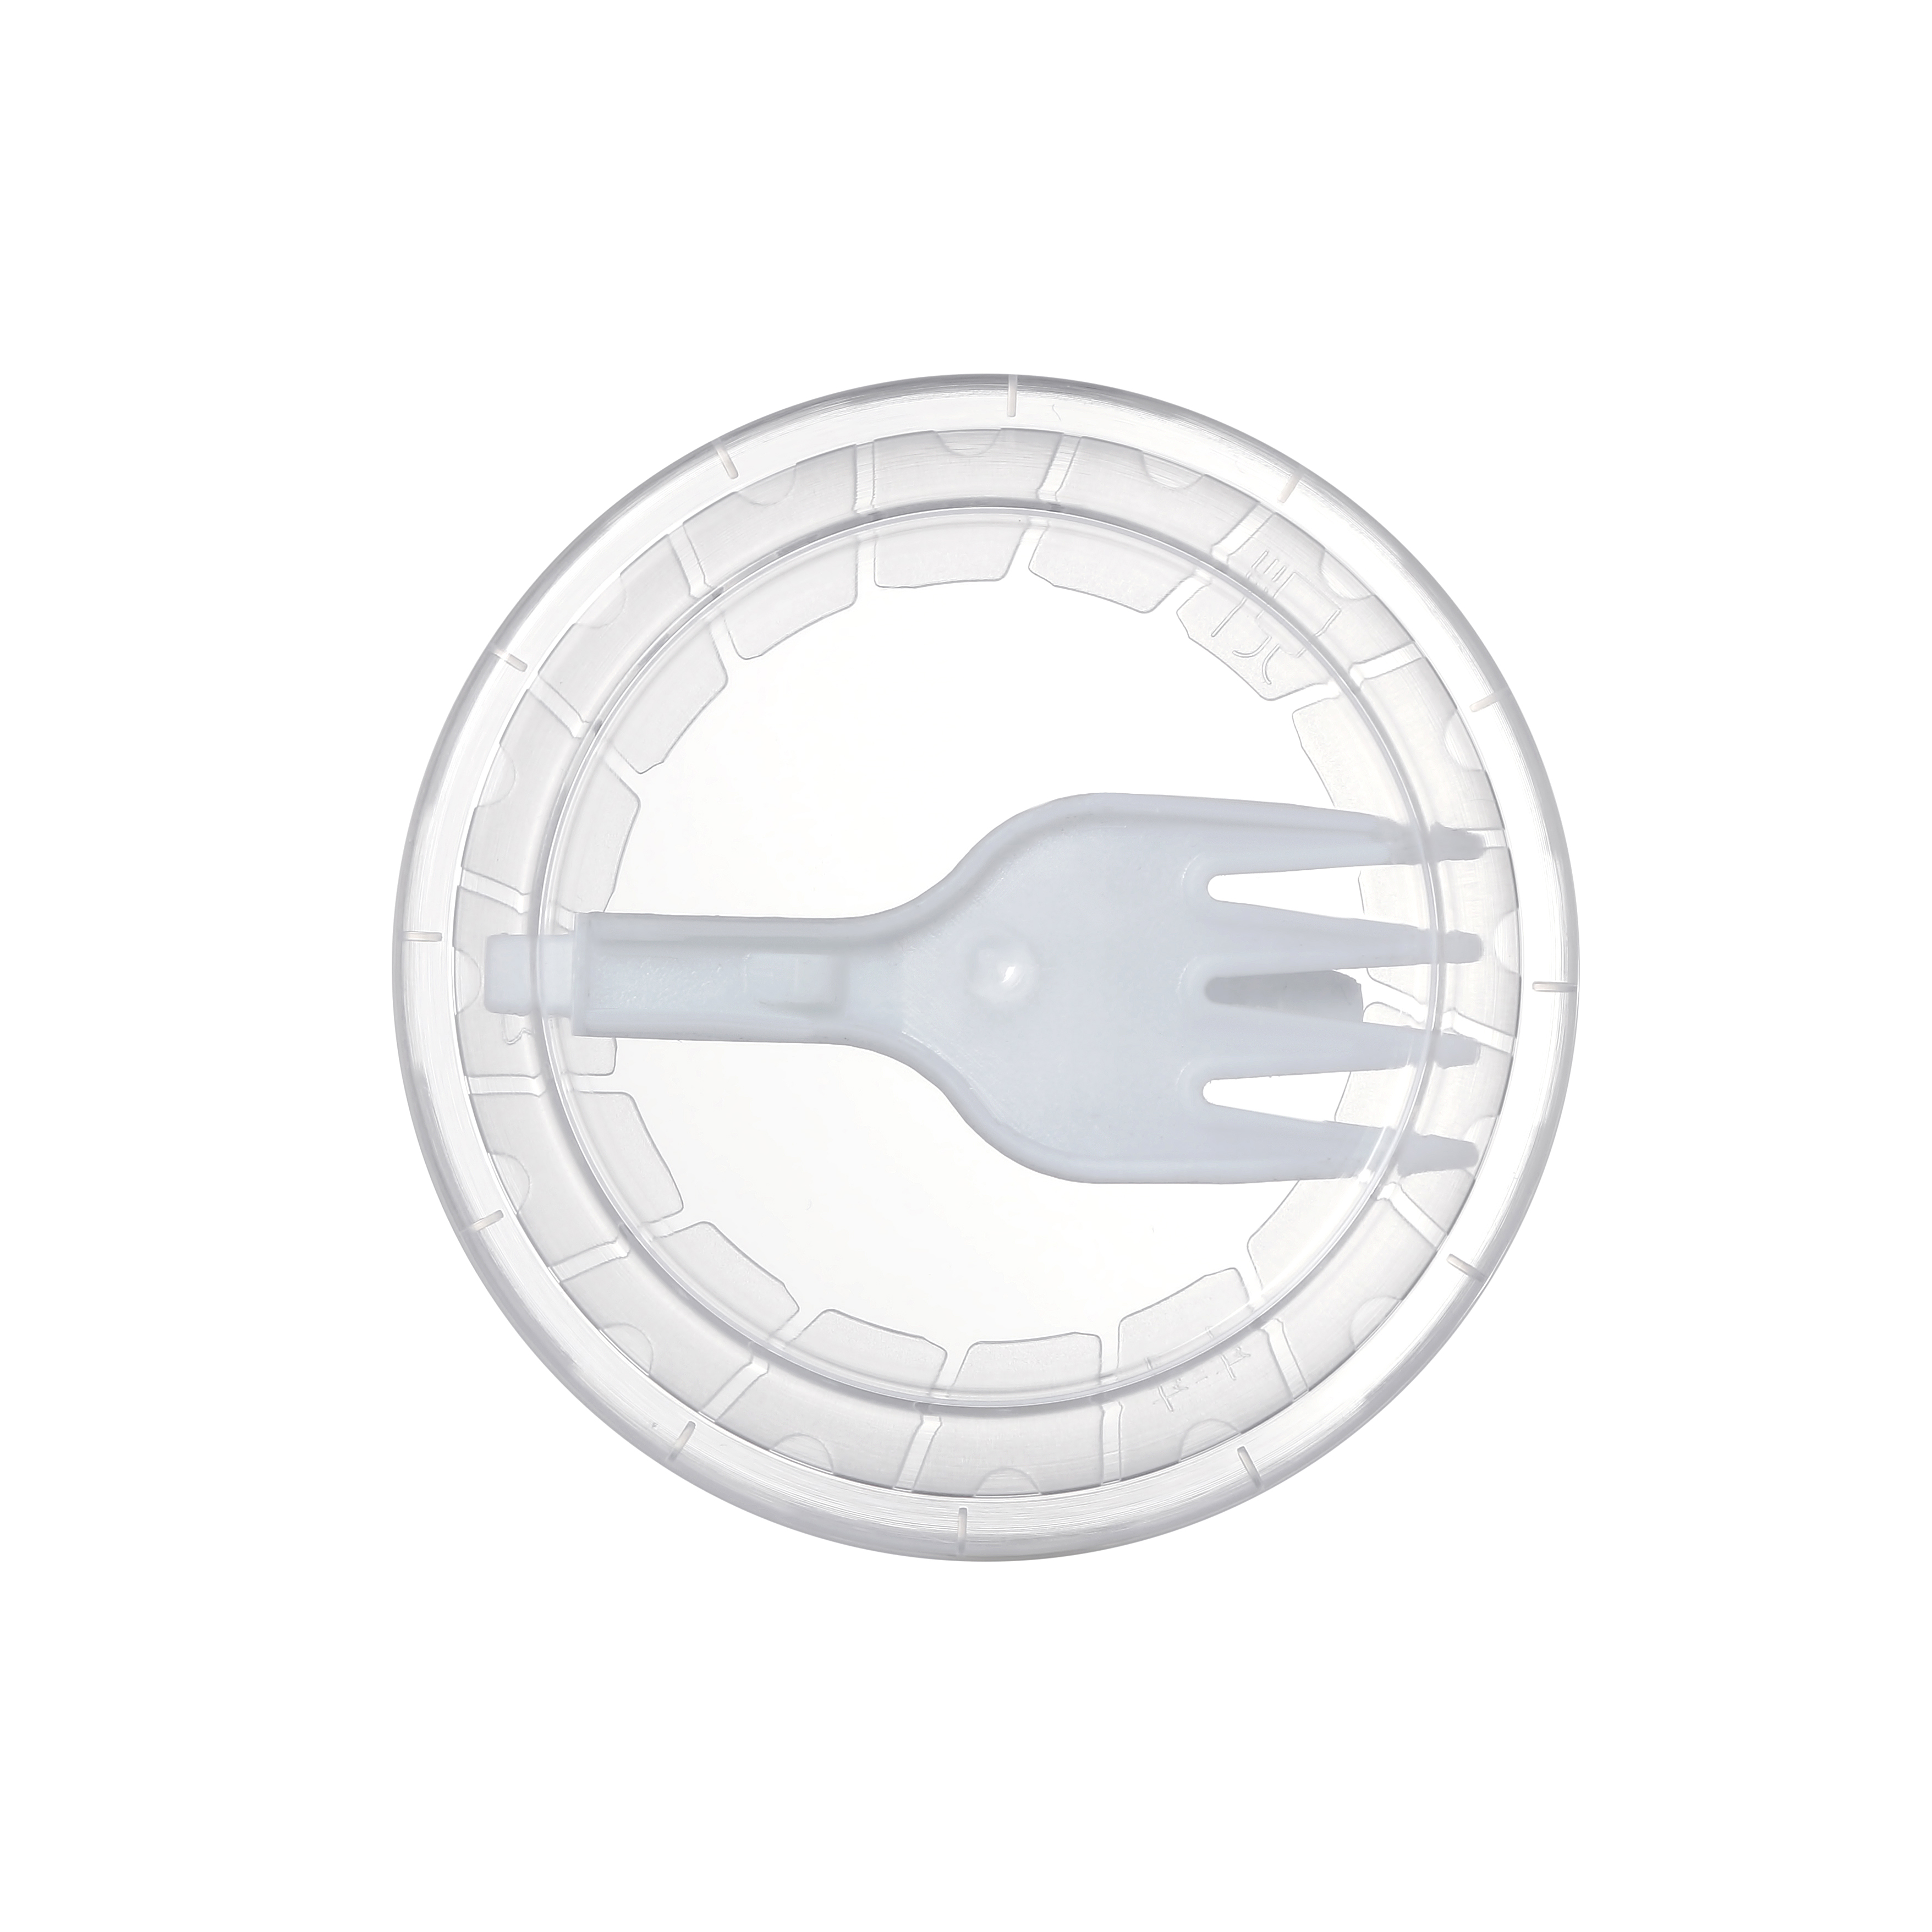 Foldable fork in lid is the best option for  consuming  noodles, salads, rice on the go